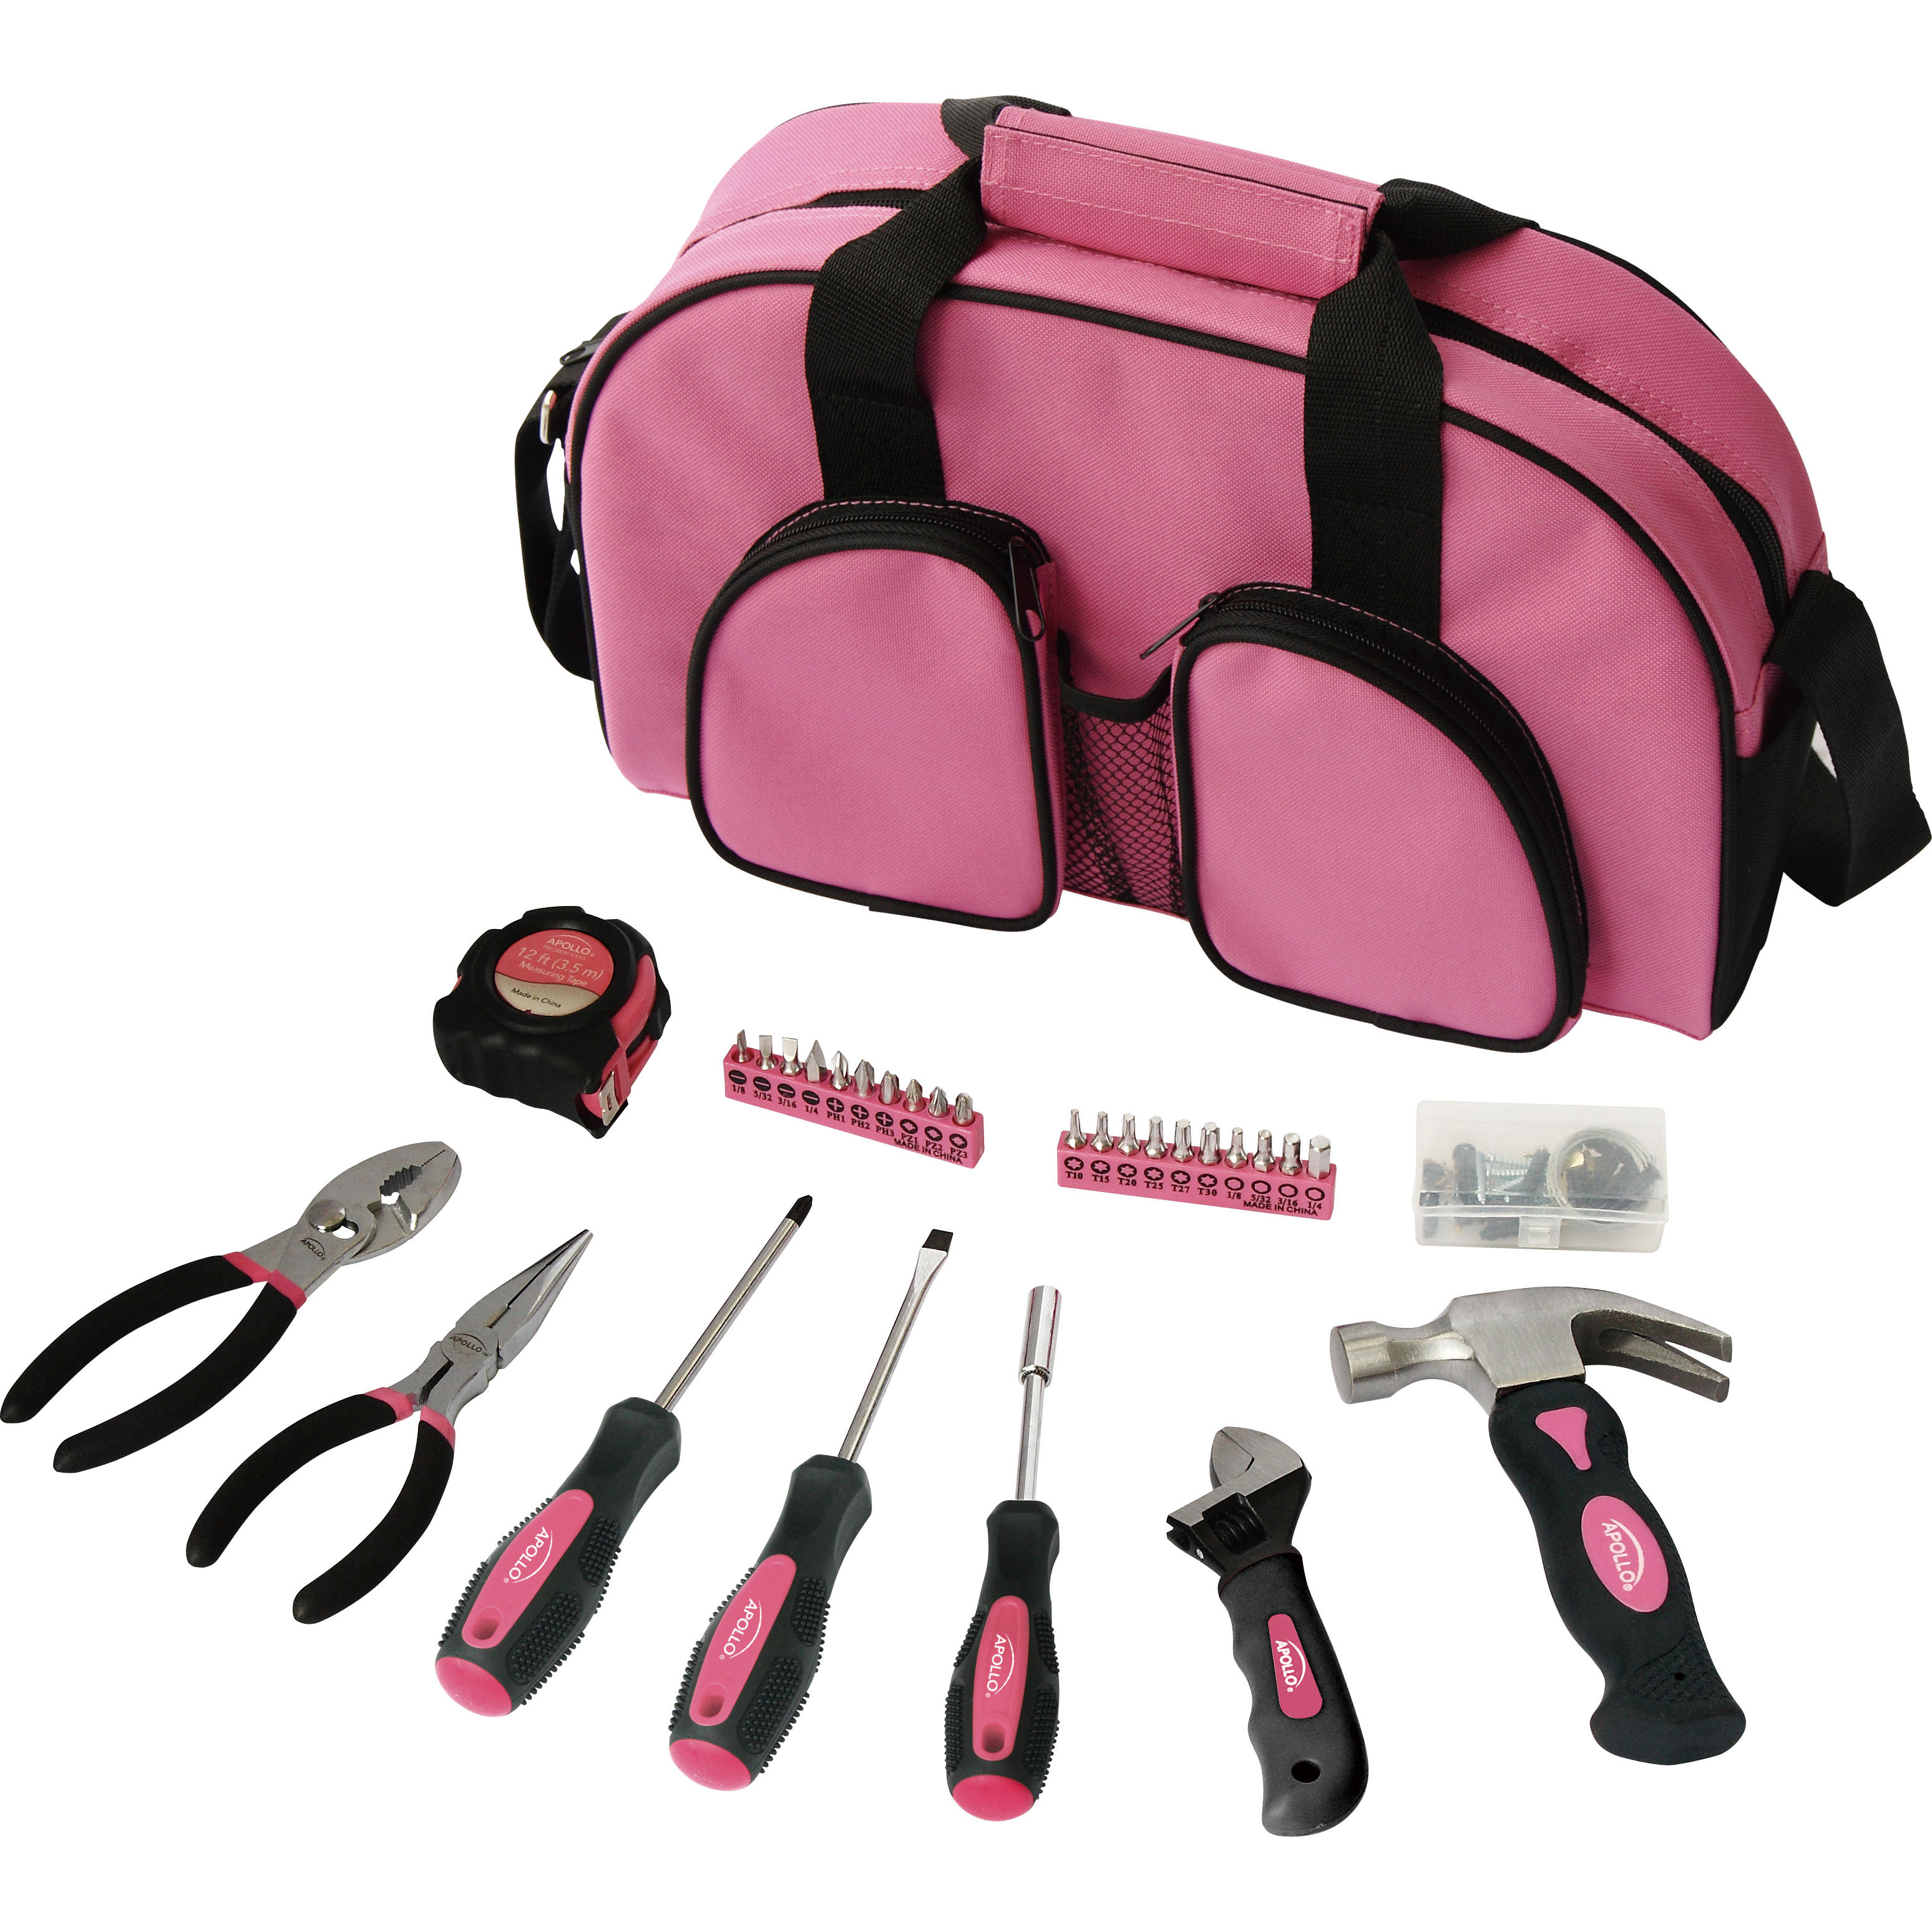 69-Piece Household Tool Kit